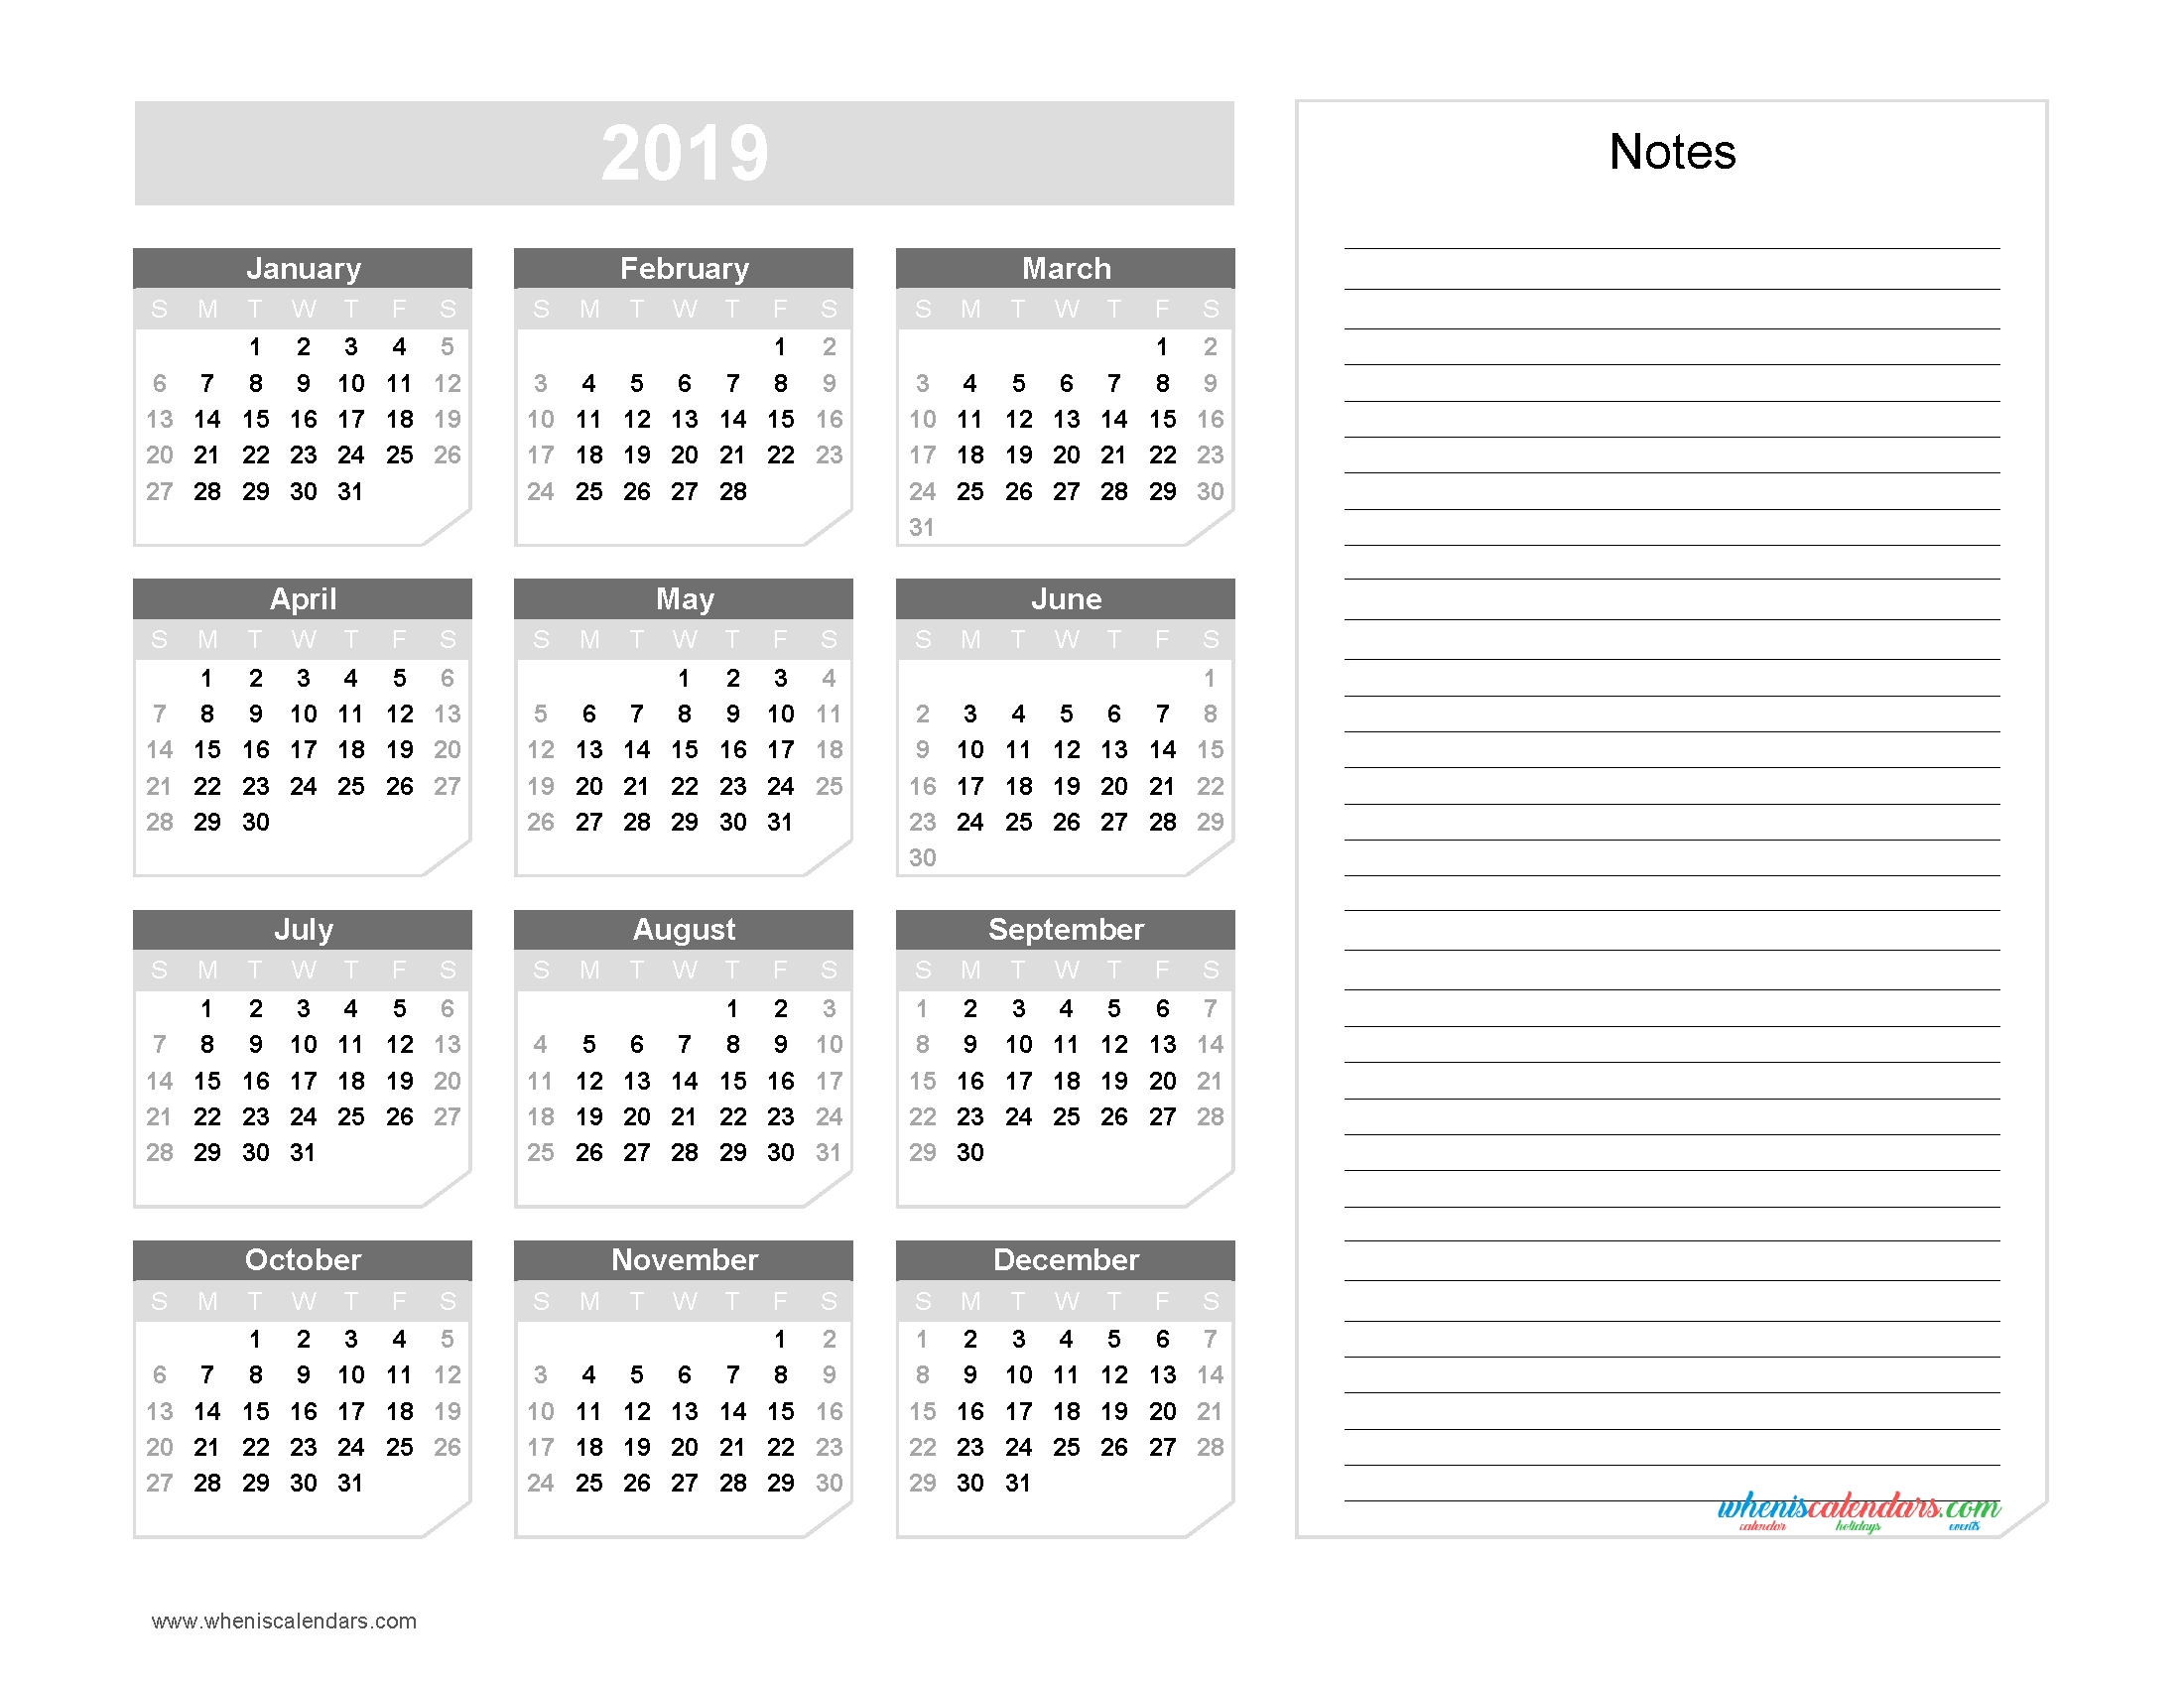 2019 Yearly Calendar With Notes Printable Chamfer Collection Grayscale